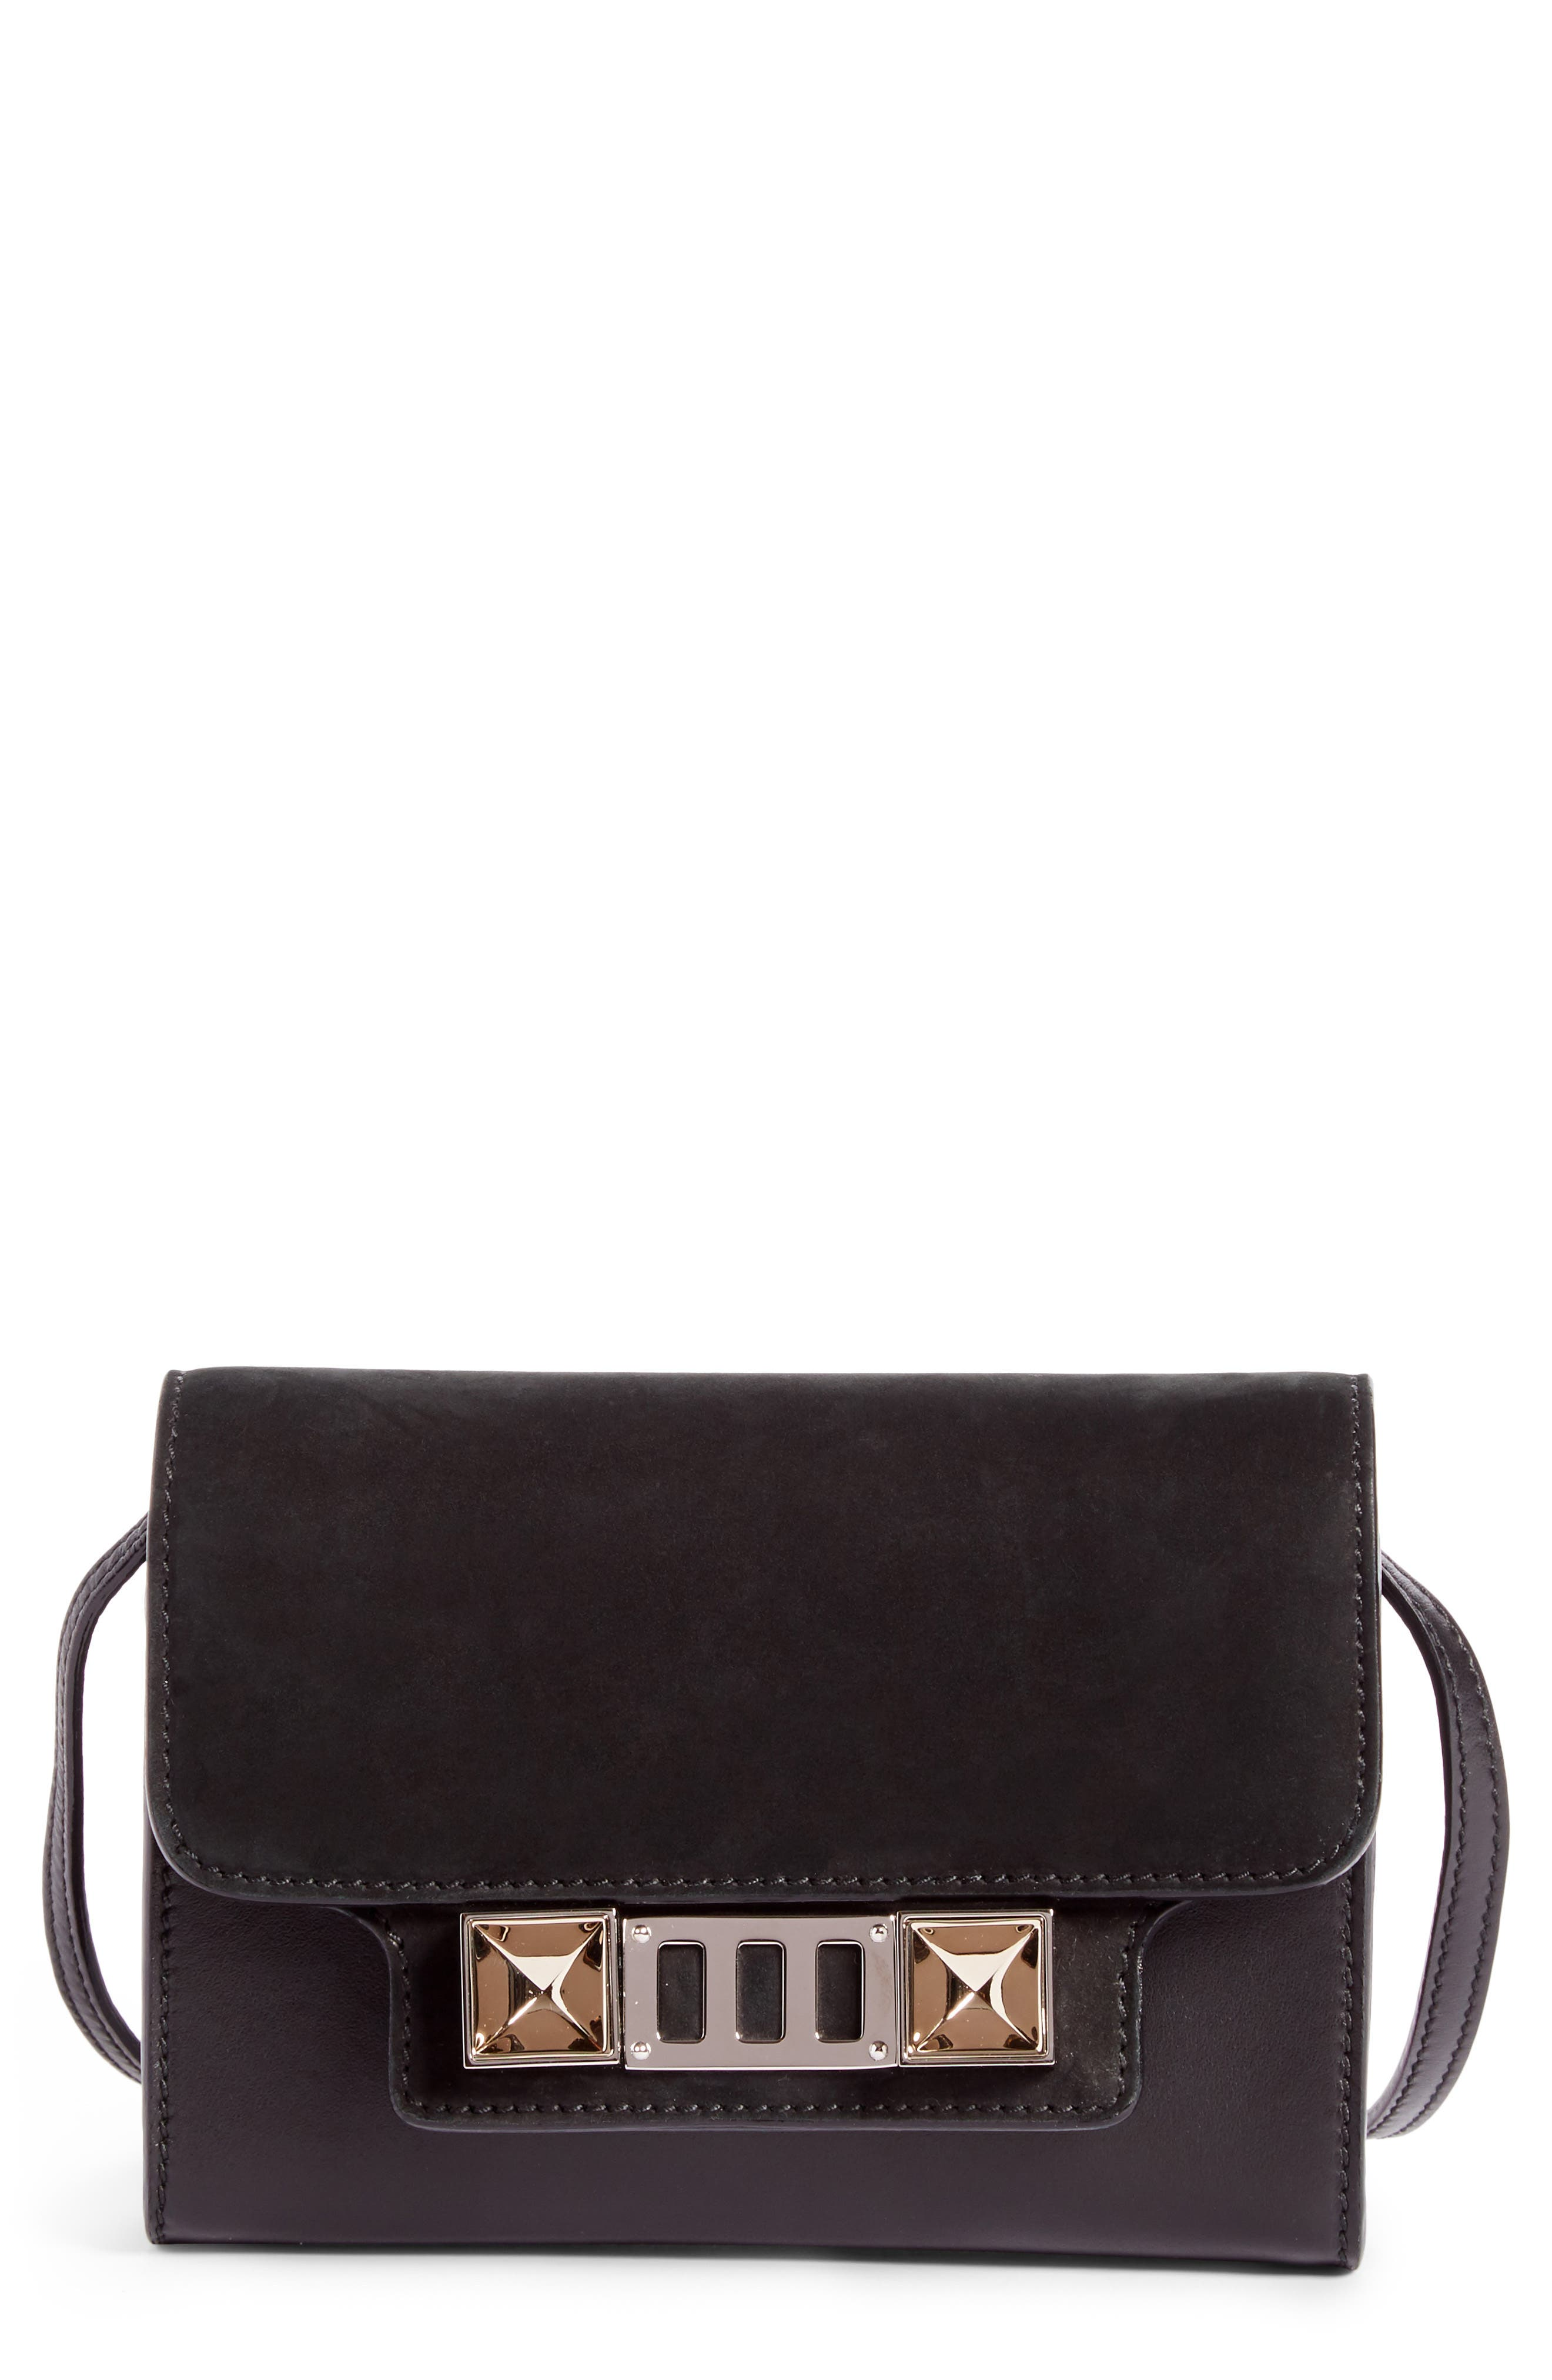 PS11 Calfskin Leather Crossbody Wallet,                         Main,                         color, 001